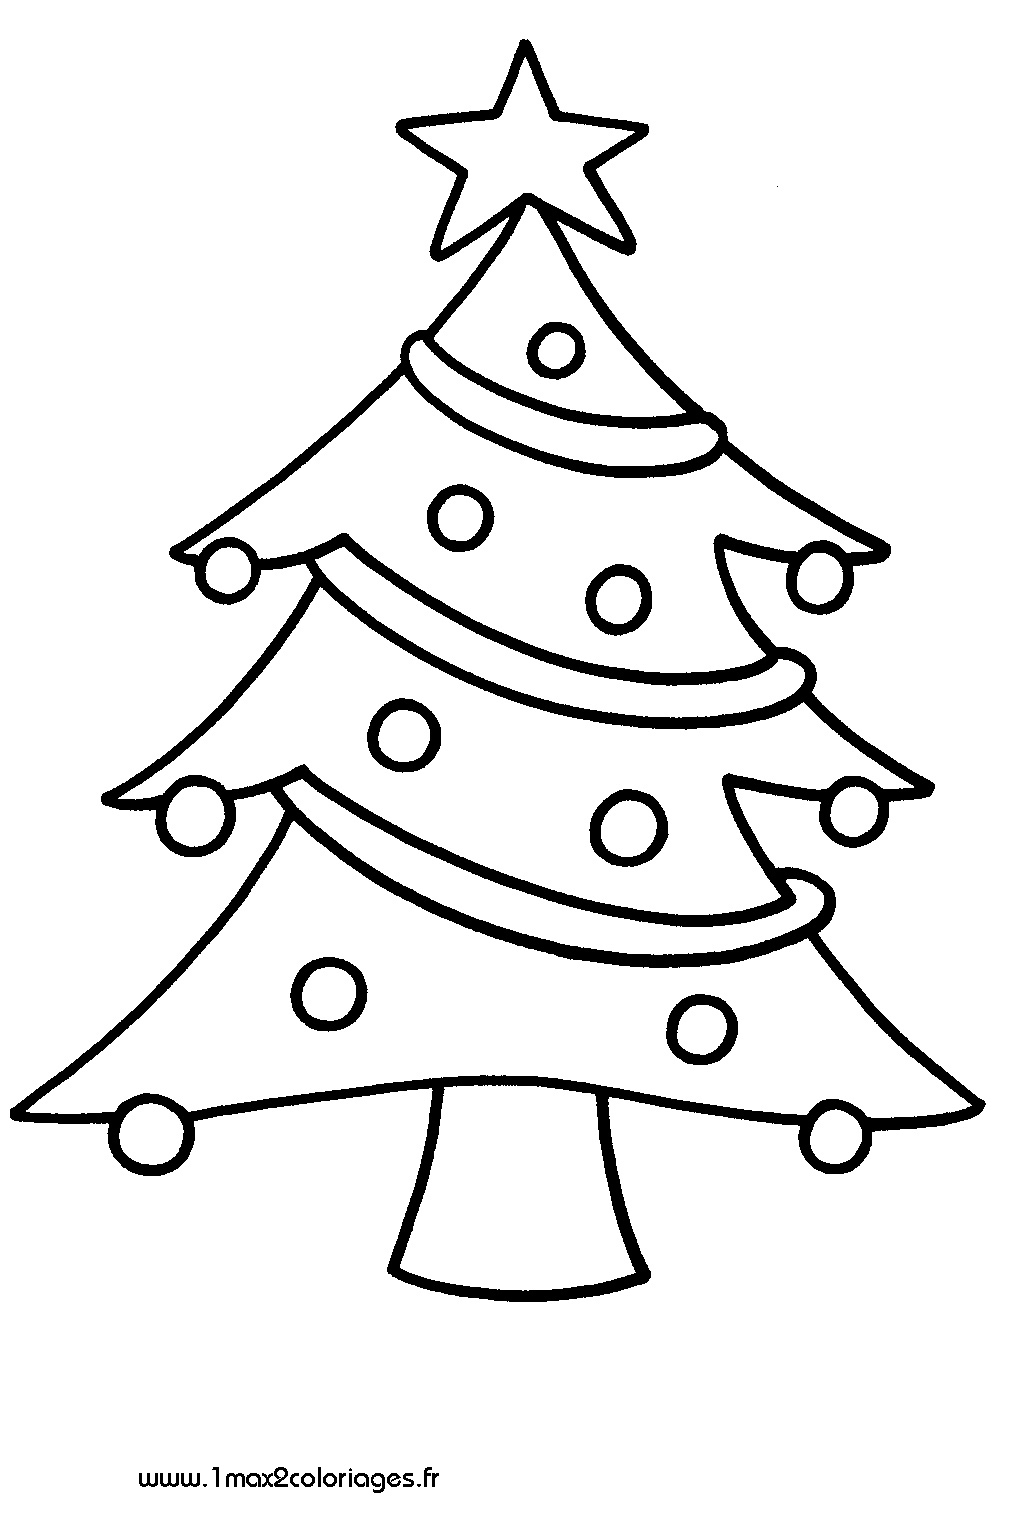 coloriage204 sapin de noel coloriage a imprimer. Black Bedroom Furniture Sets. Home Design Ideas